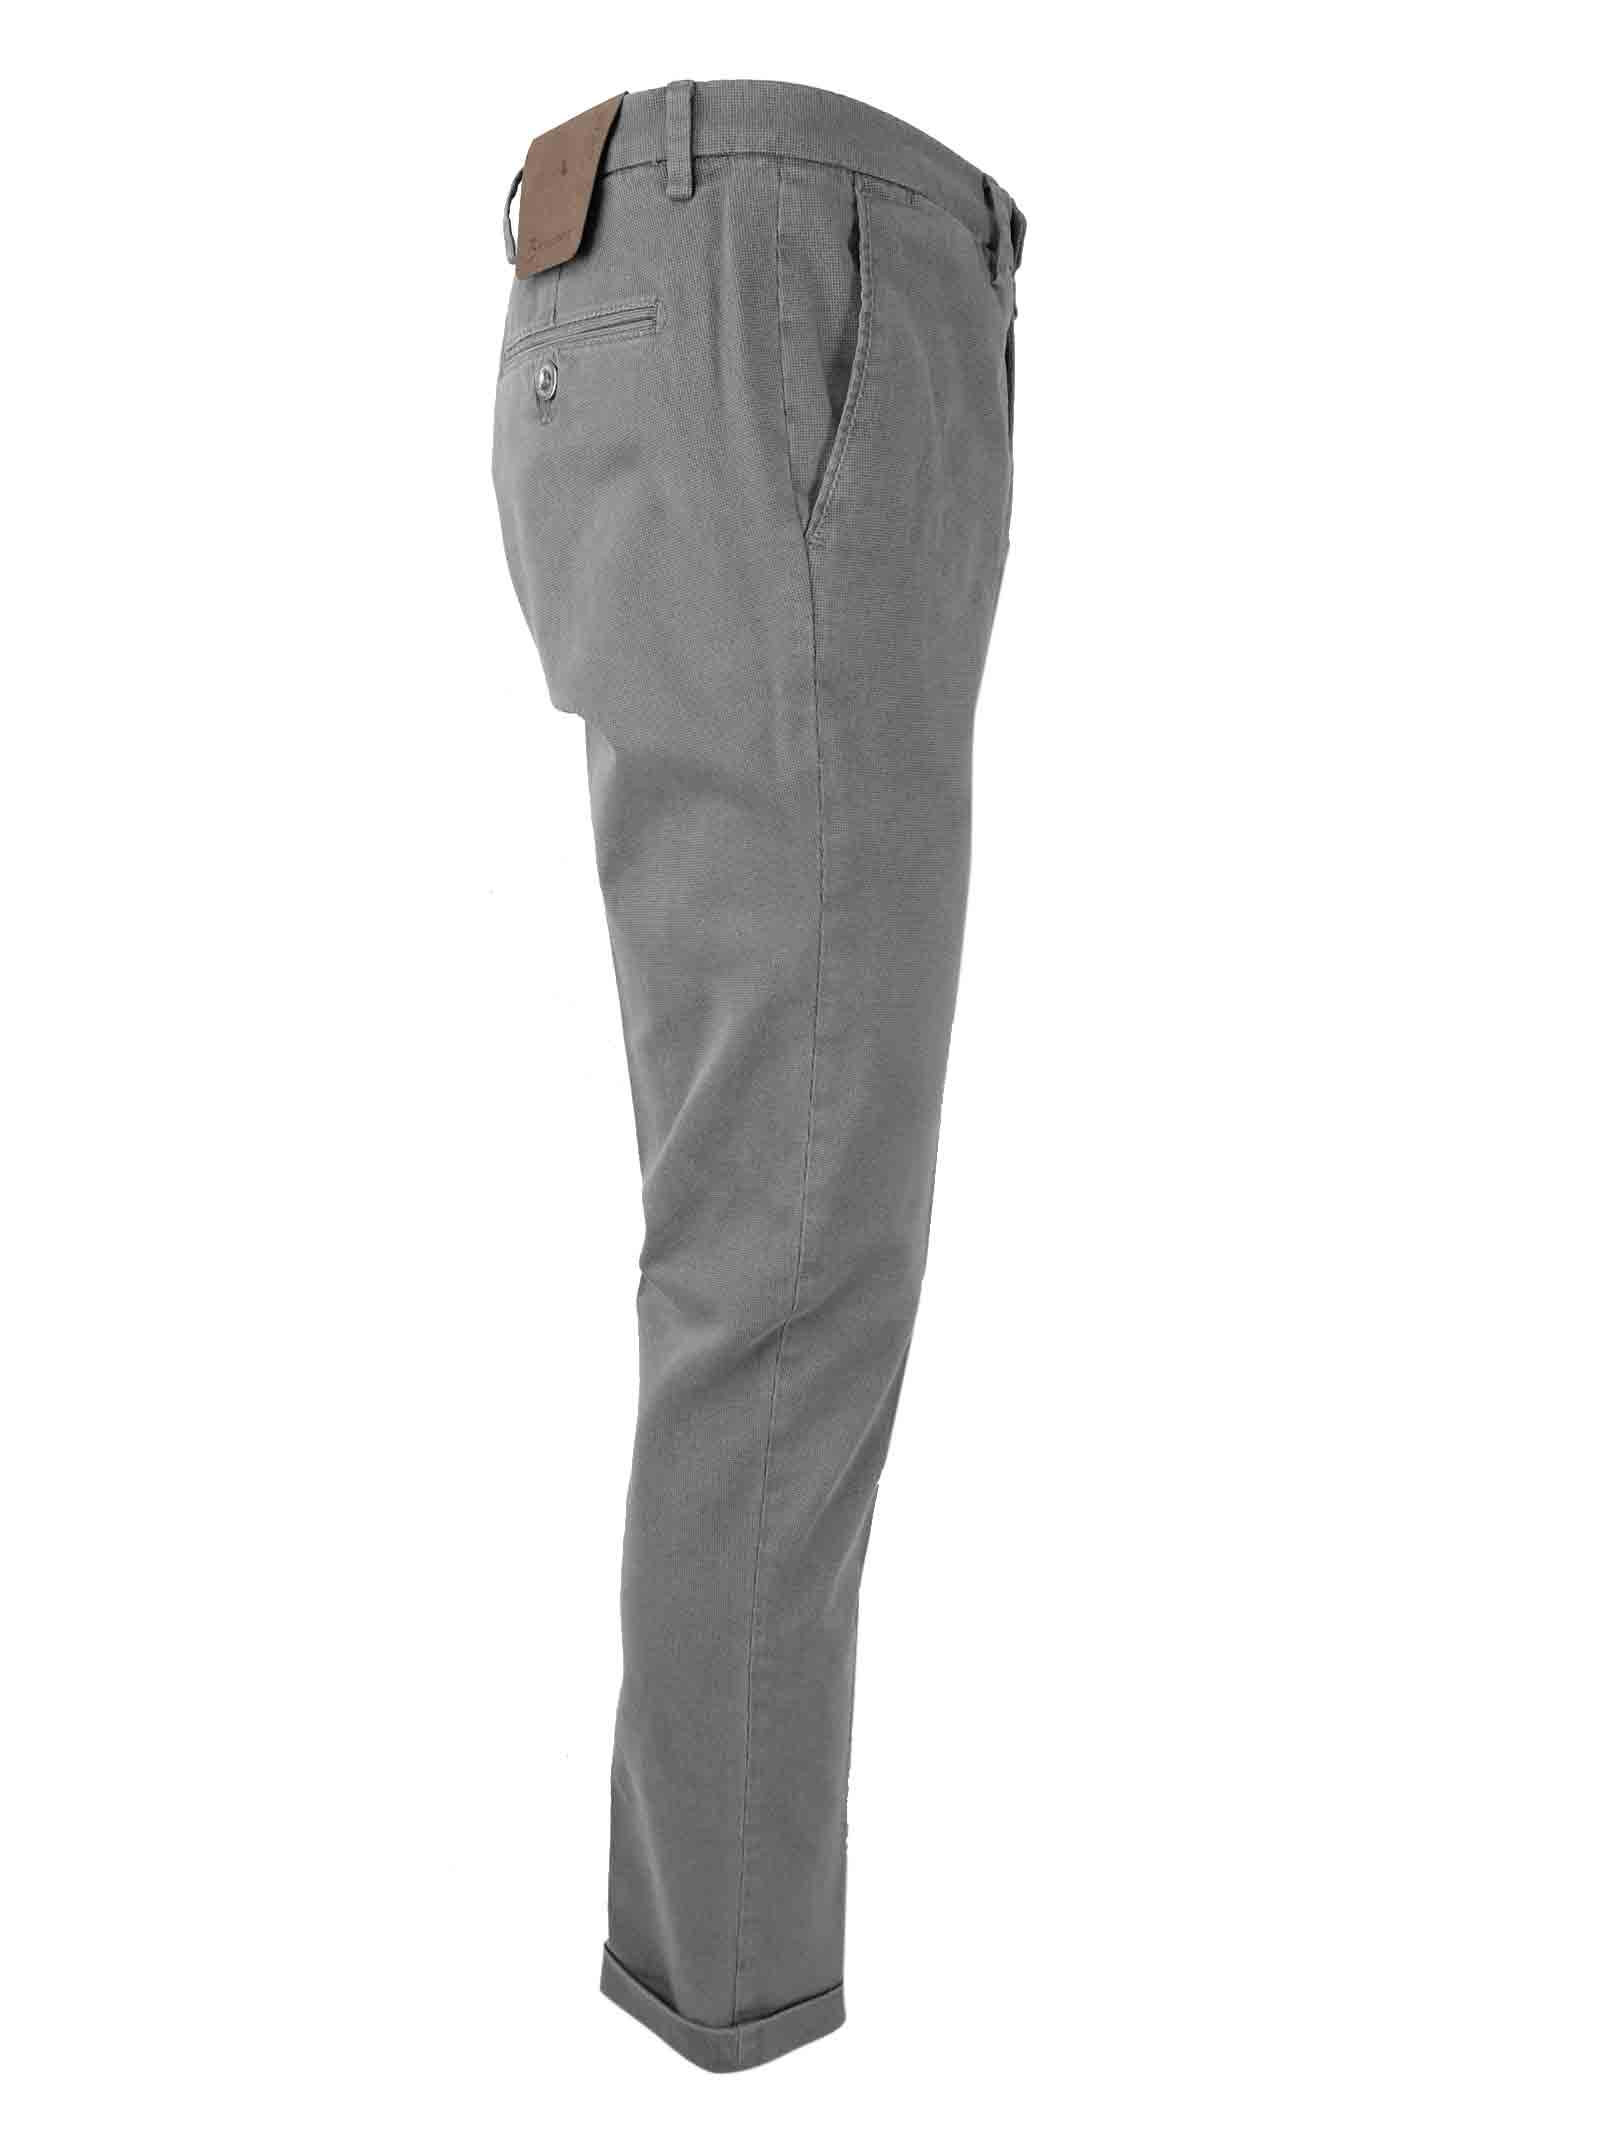 B700 | Trousers | MH700 800976